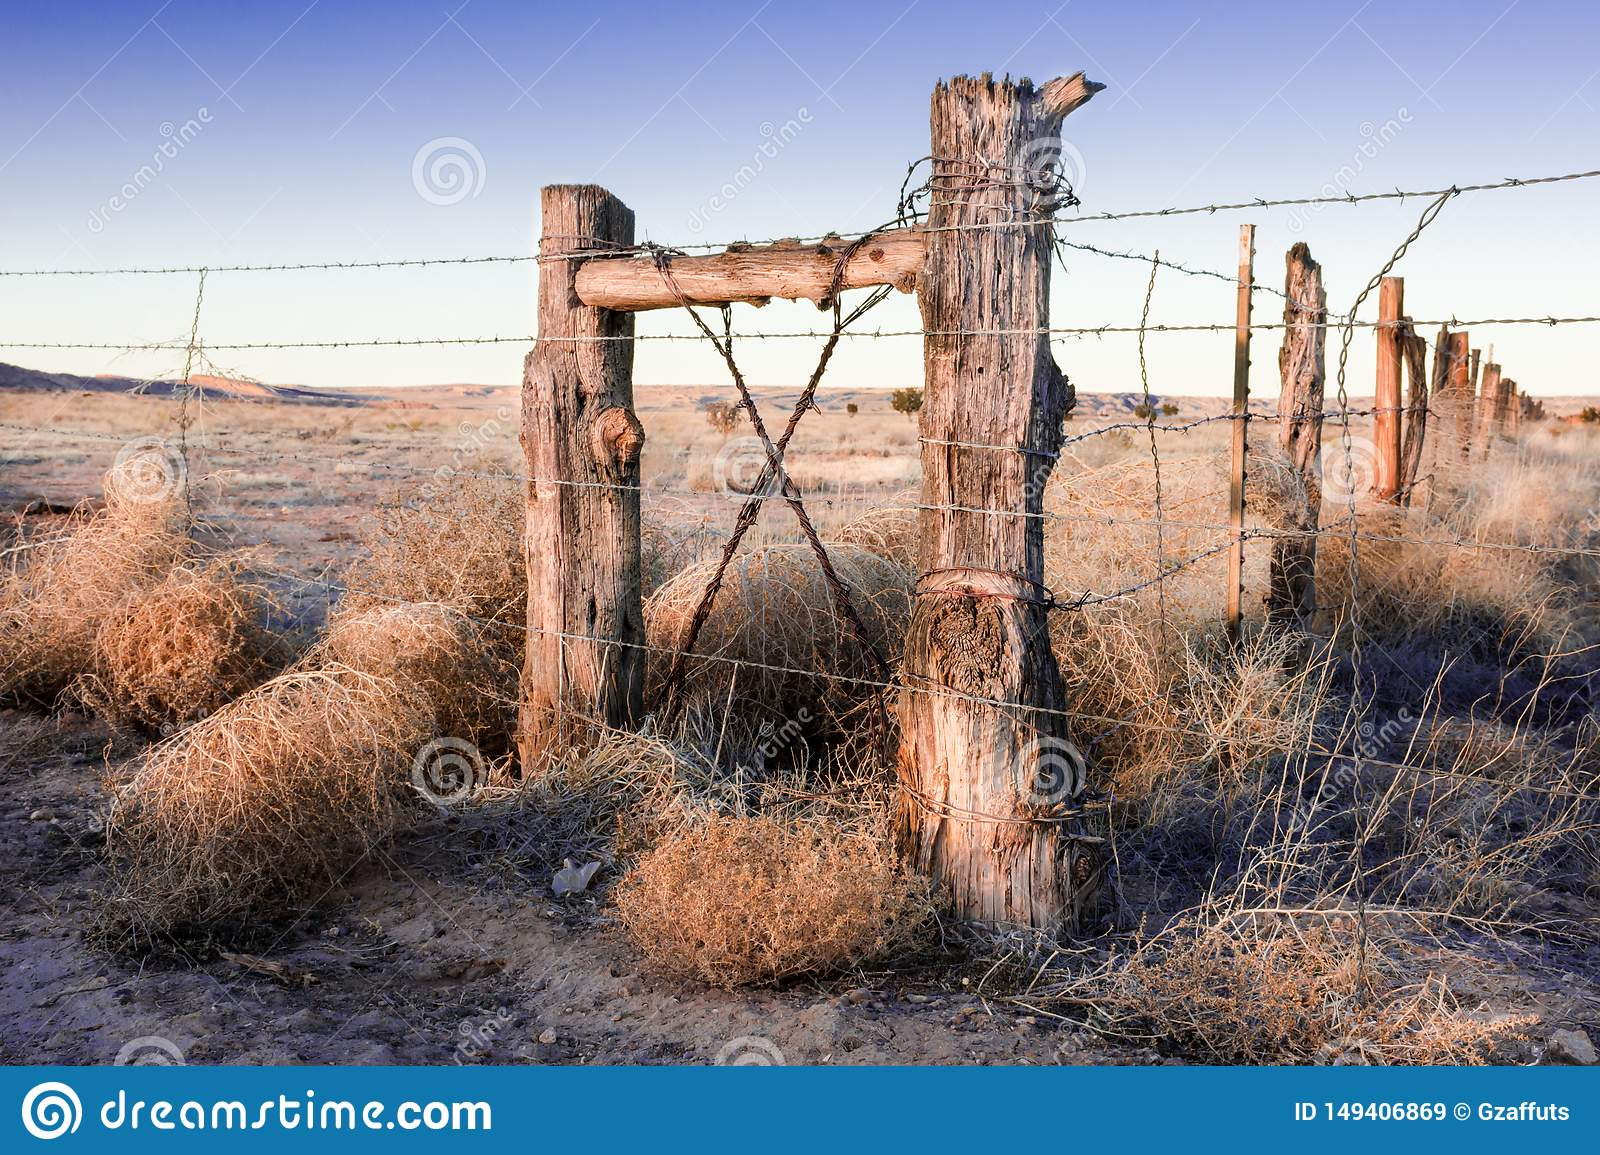 Vintage log fence on old Route 66 in New Mexico at sunset.